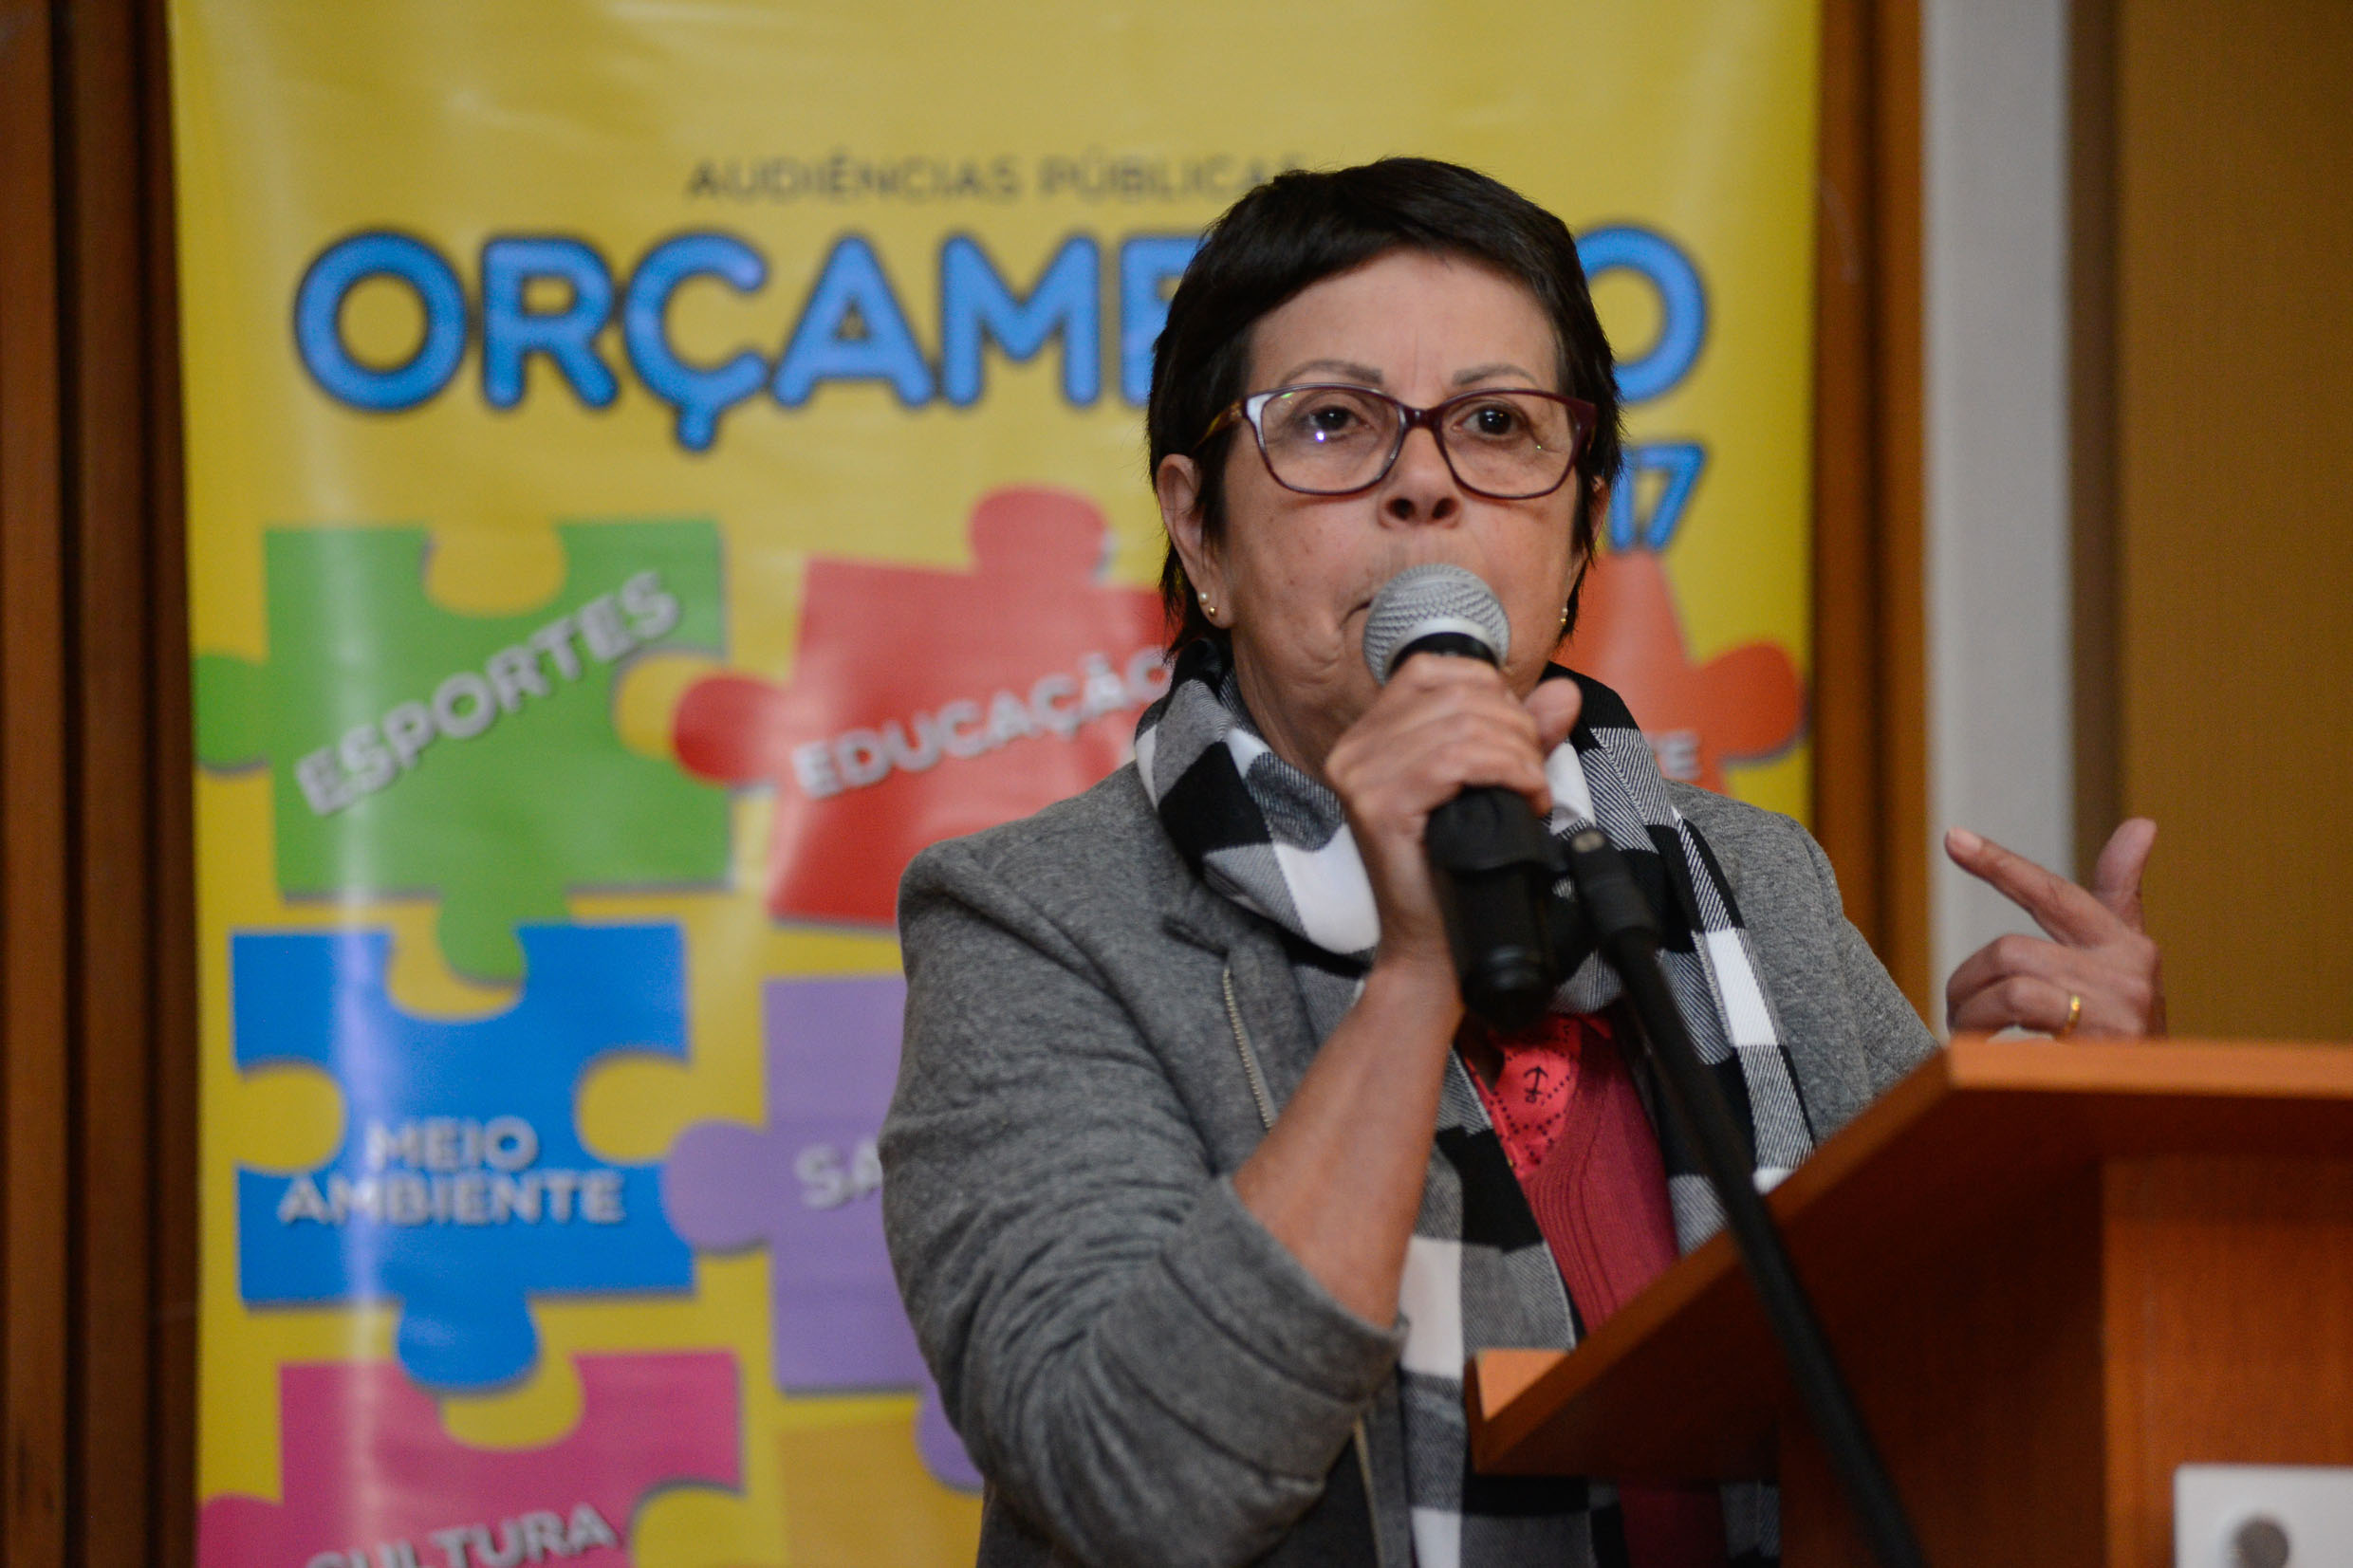 Ana do Carmo <a style='float:right' href='https://www3.al.sp.gov.br/repositorio/noticia/N-06-2016/fg191702.jpg' target=_blank><img src='/_img/material-file-download-white.png' width='14px' alt='Clique para baixar a imagem'></a>